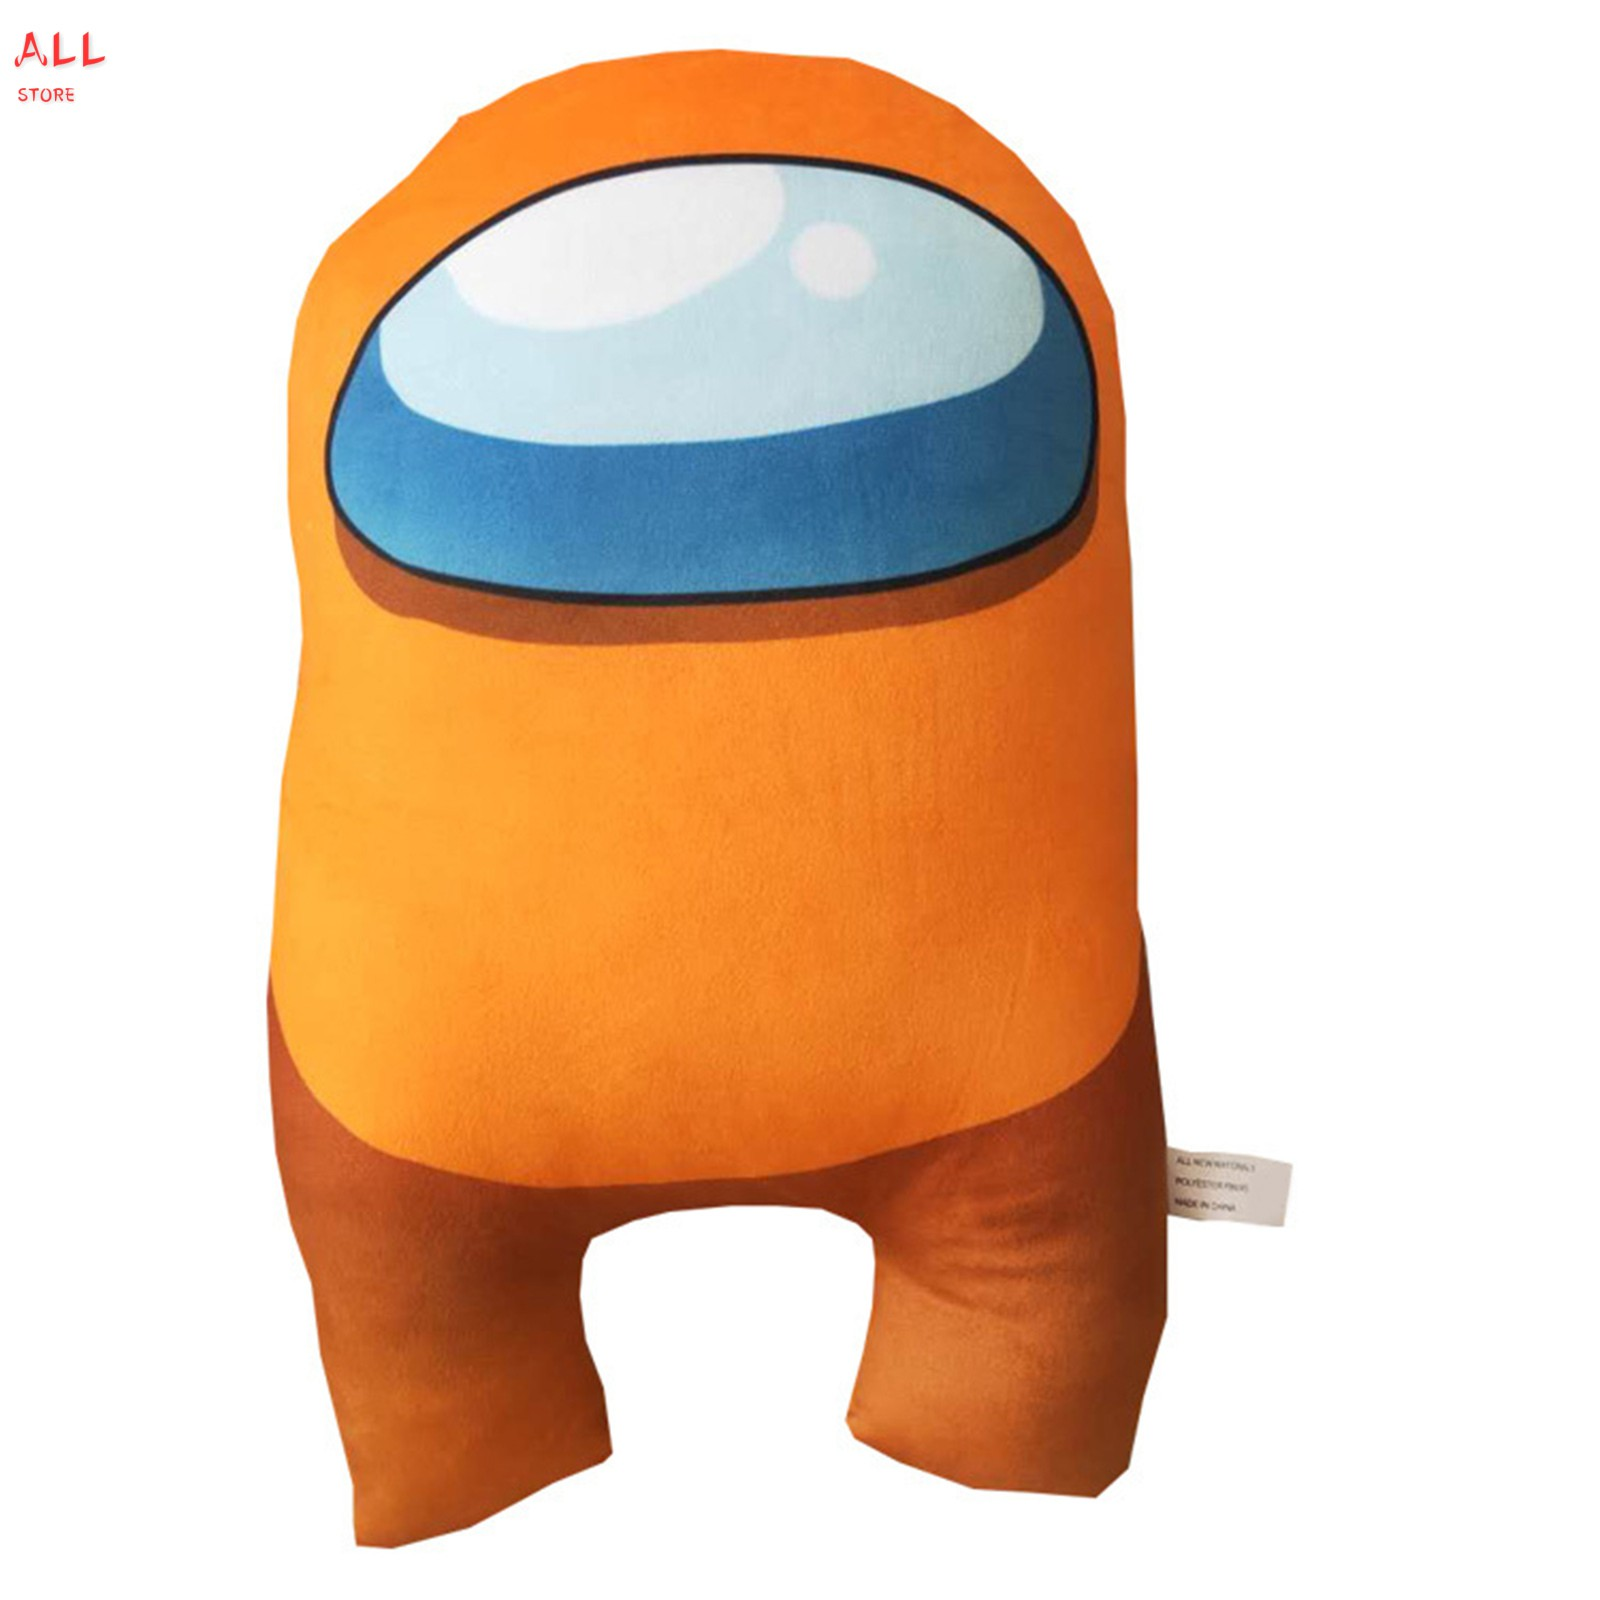 Among Us Plush Crewmate Plushie Kawaii Stuffed Soft Game Plush Toy Lovely Stuffed Doll Cute